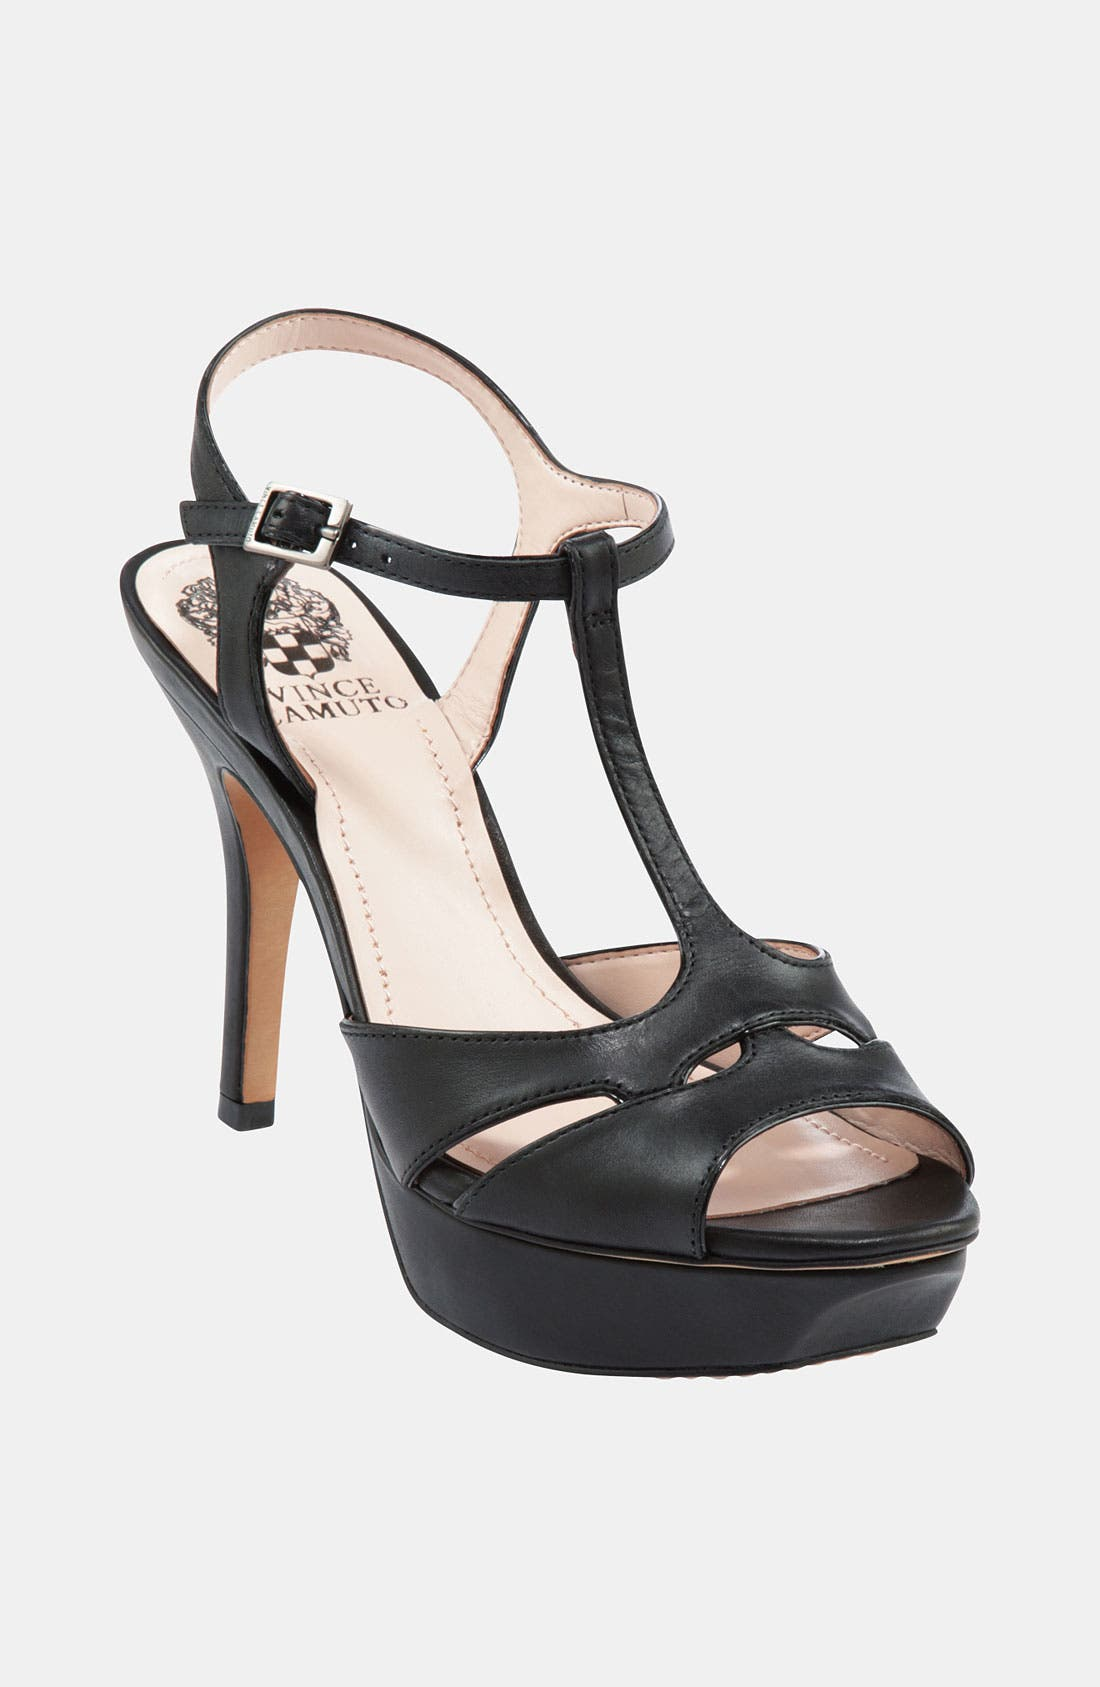 Alternate Image 1 Selected - Vince Camuto 'Trinna' Sandal (Online Only)